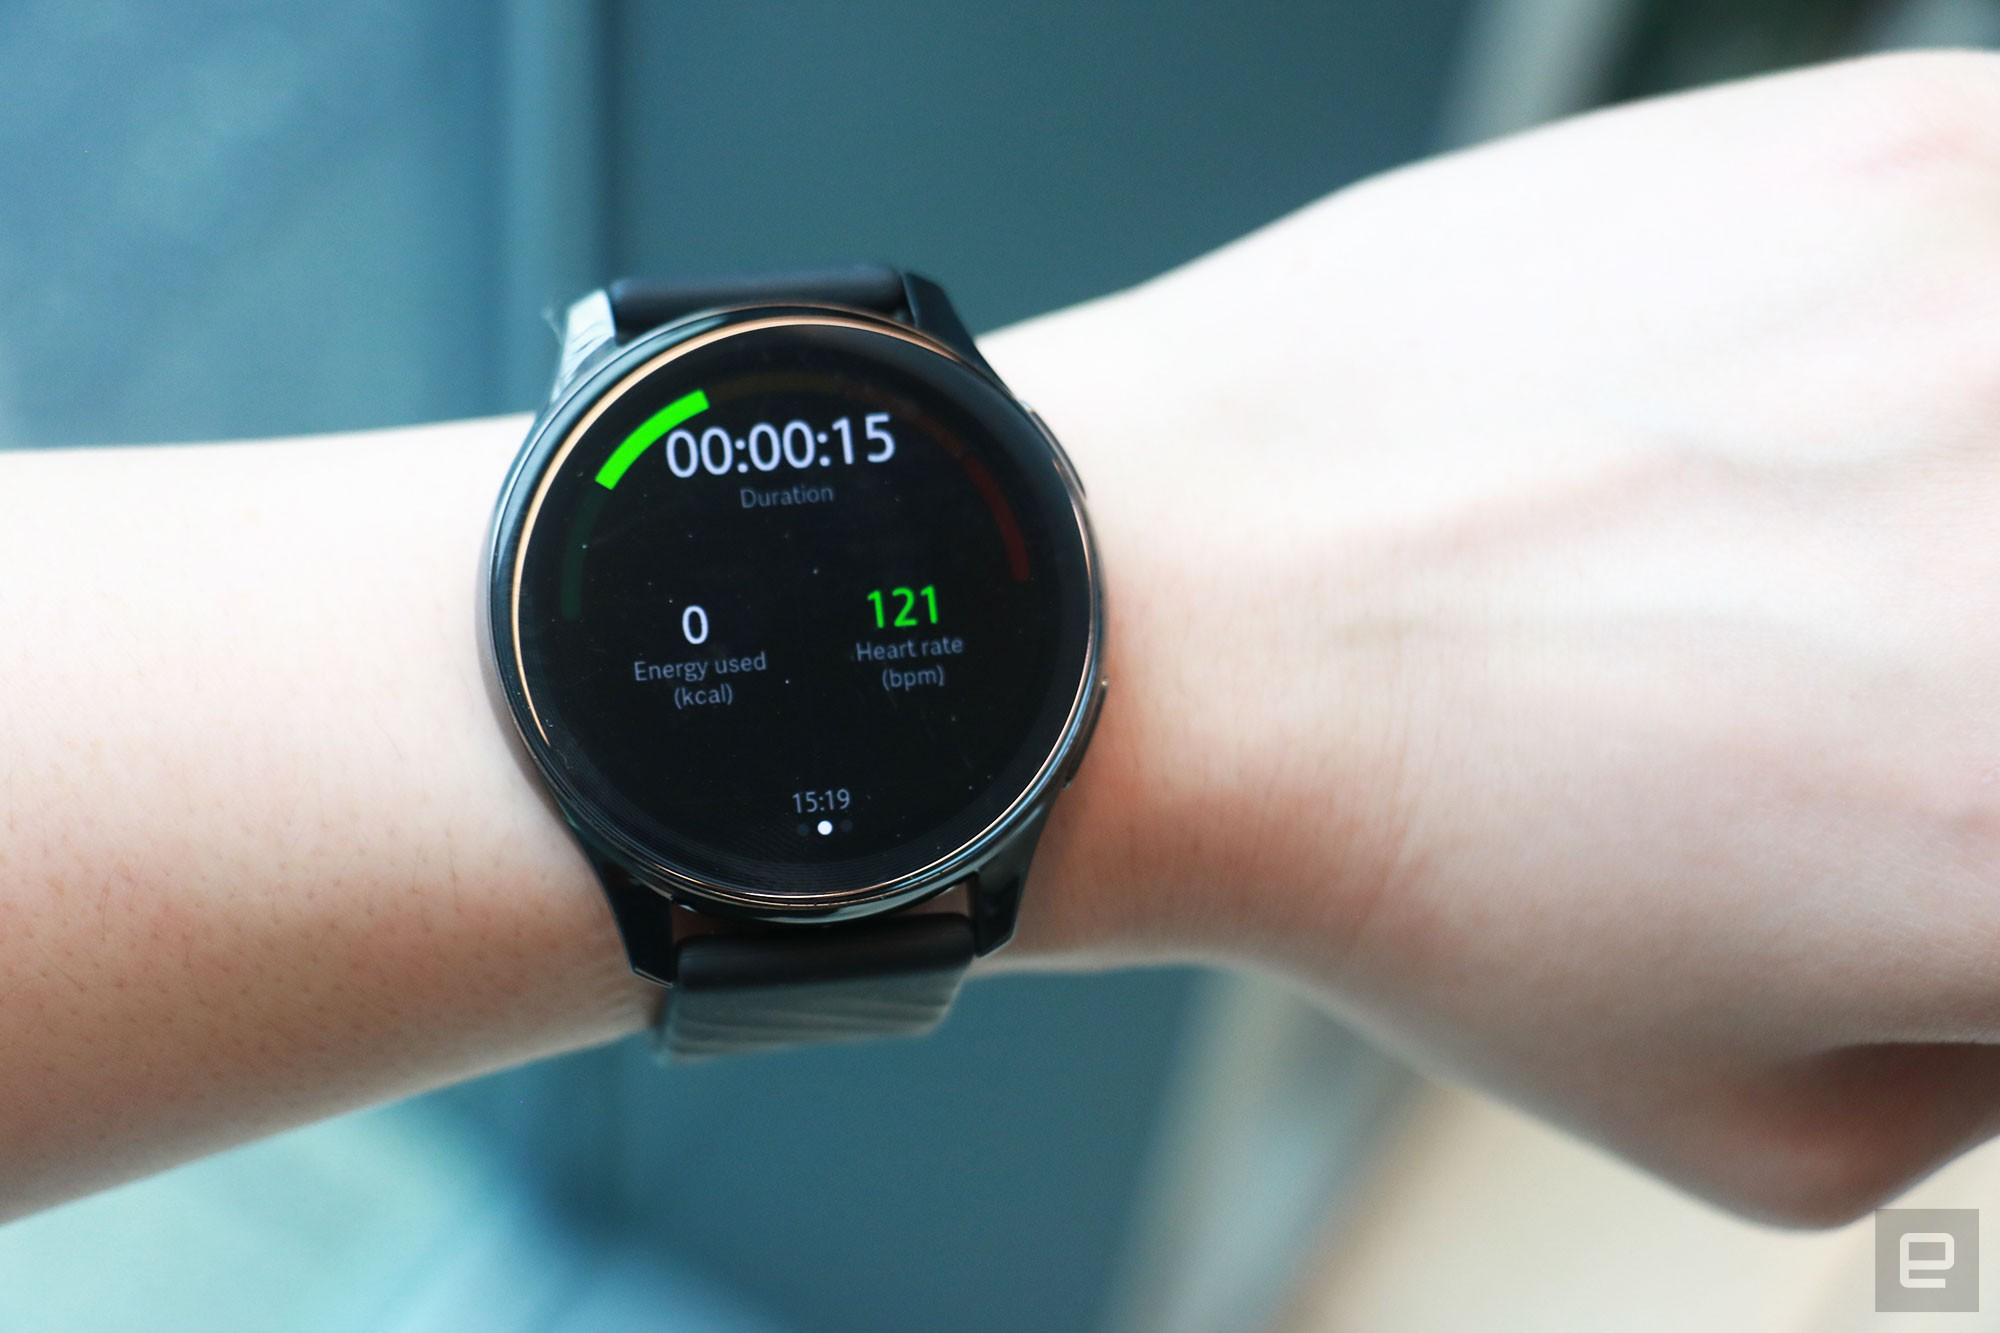 <p>OnePlus Watch review photos. OnePlus Watch on a wrist showing a workout session being logged. Onscreen metrics include duration, energy used (kcal) and heart rate.</p>